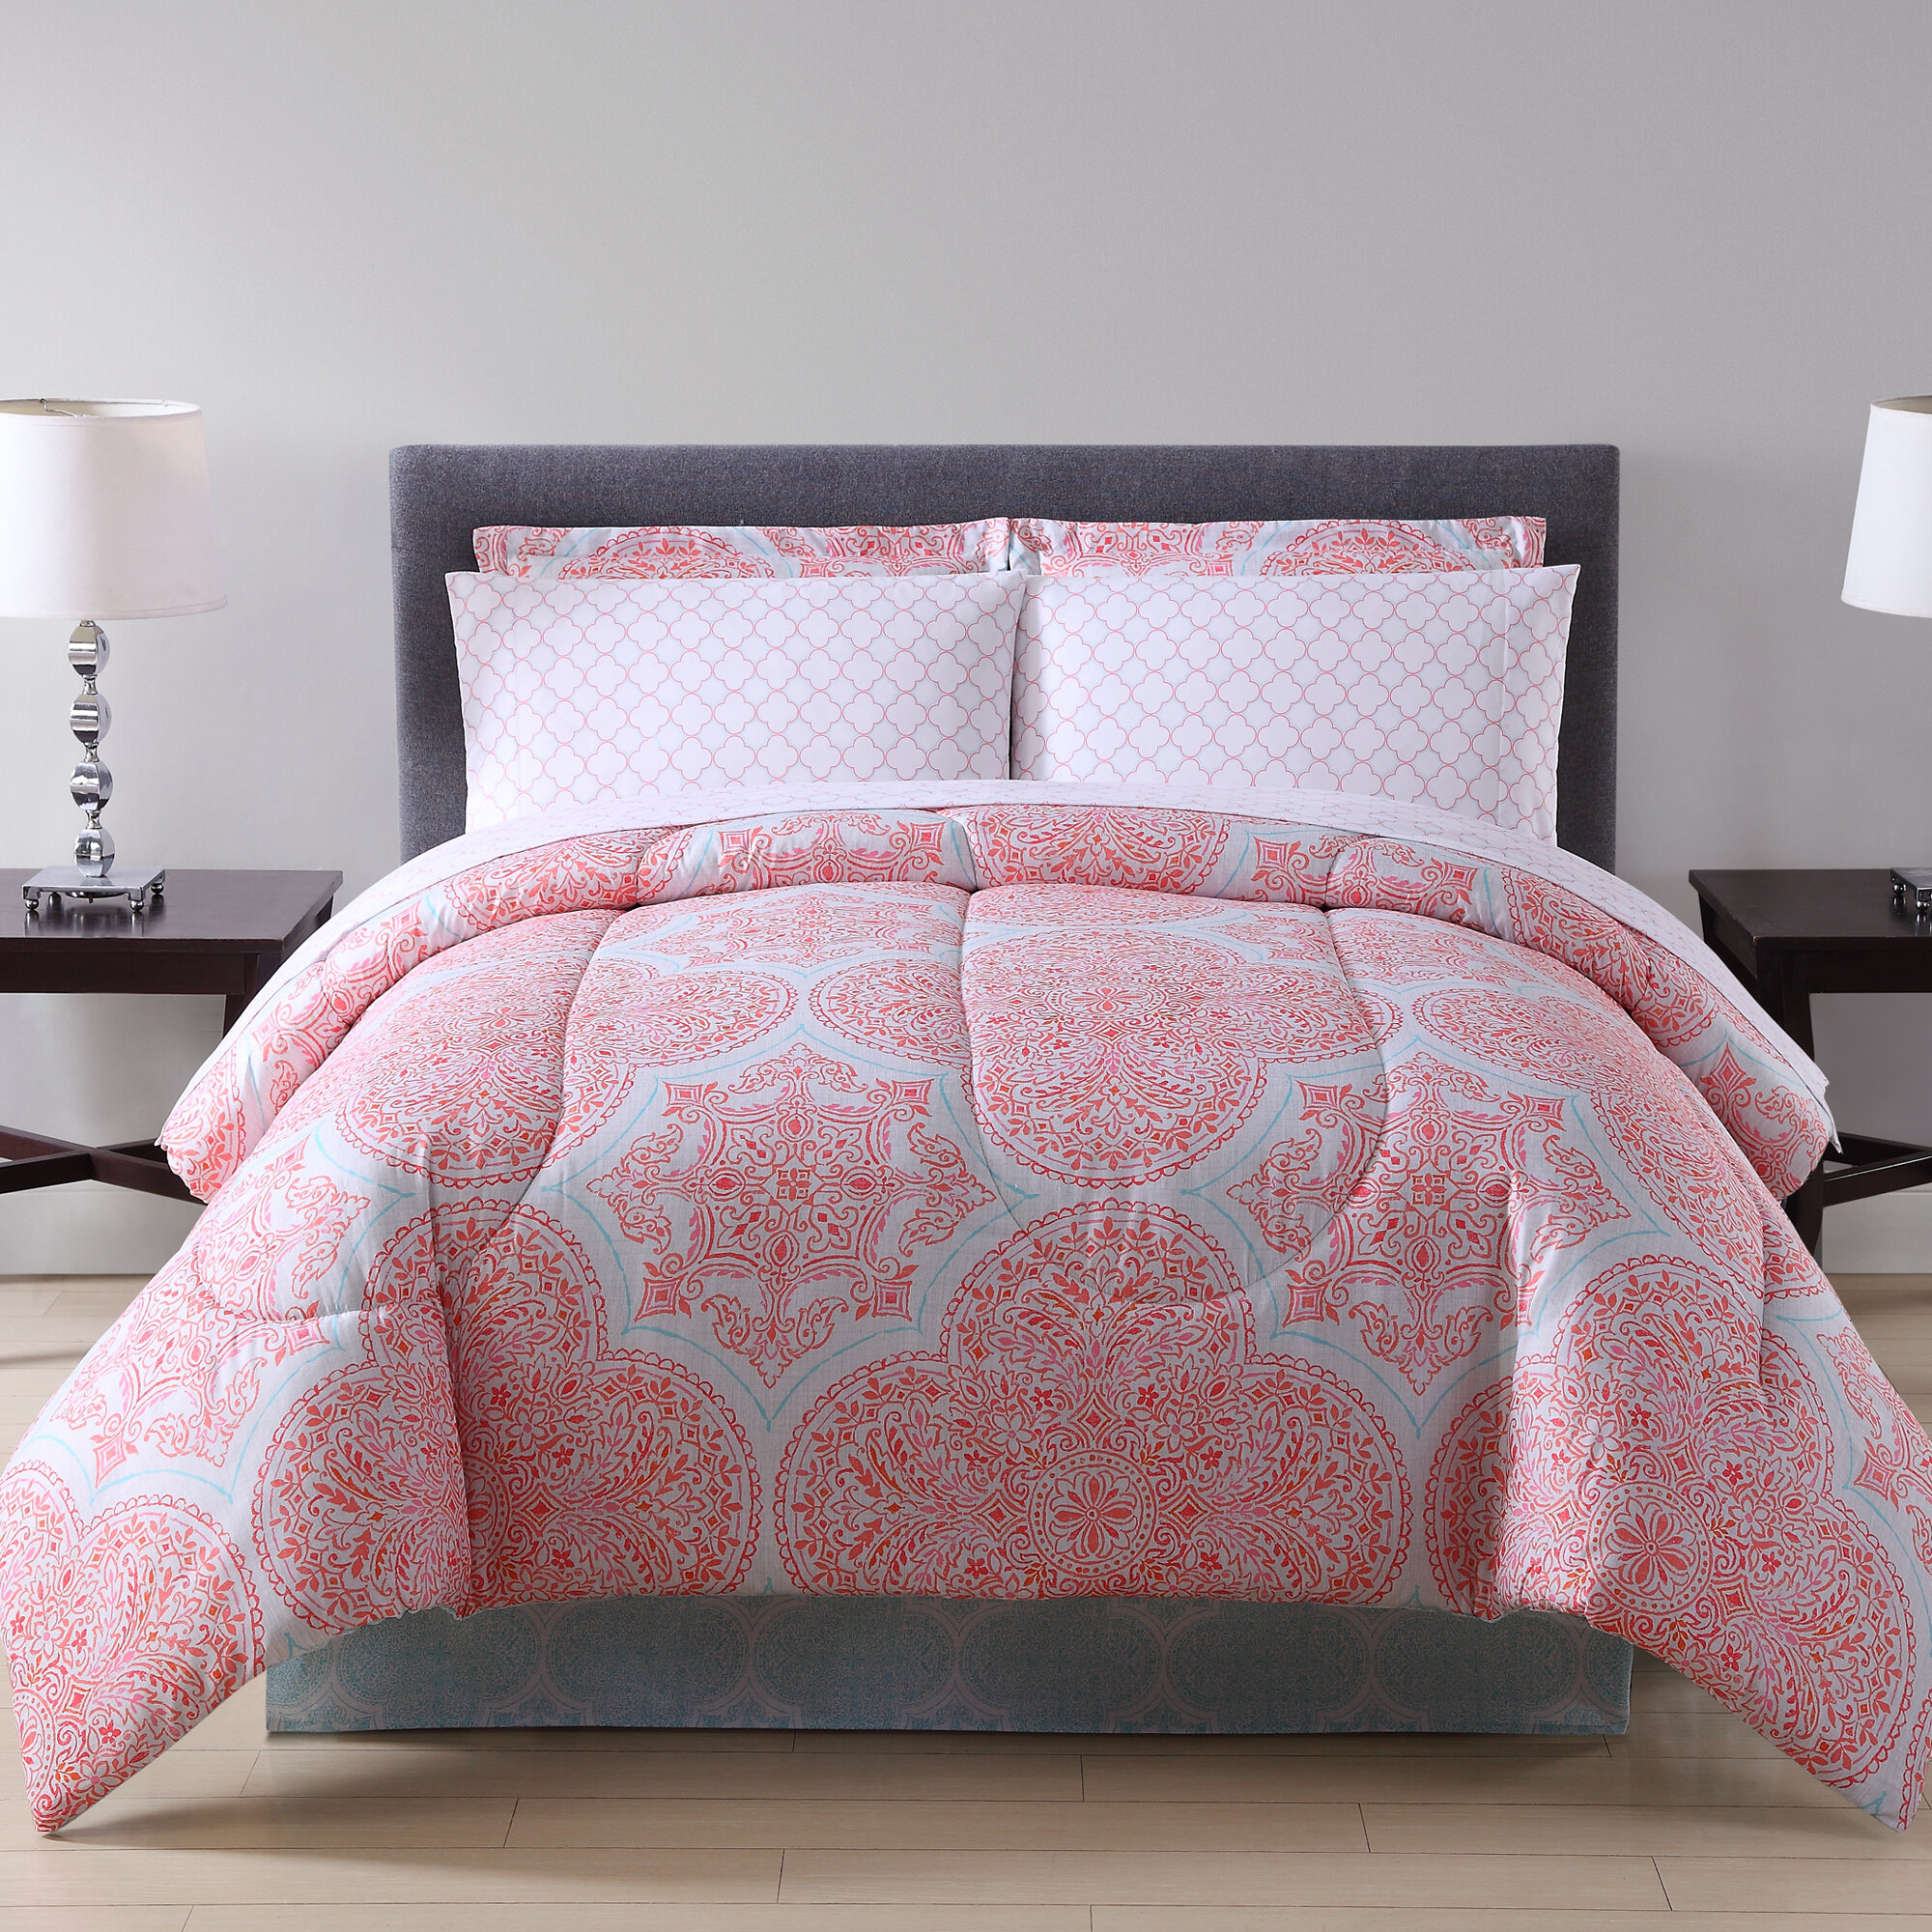 of home max full decoration reversible best bed reviews collection set studio comforter cotton queen bedding piece size